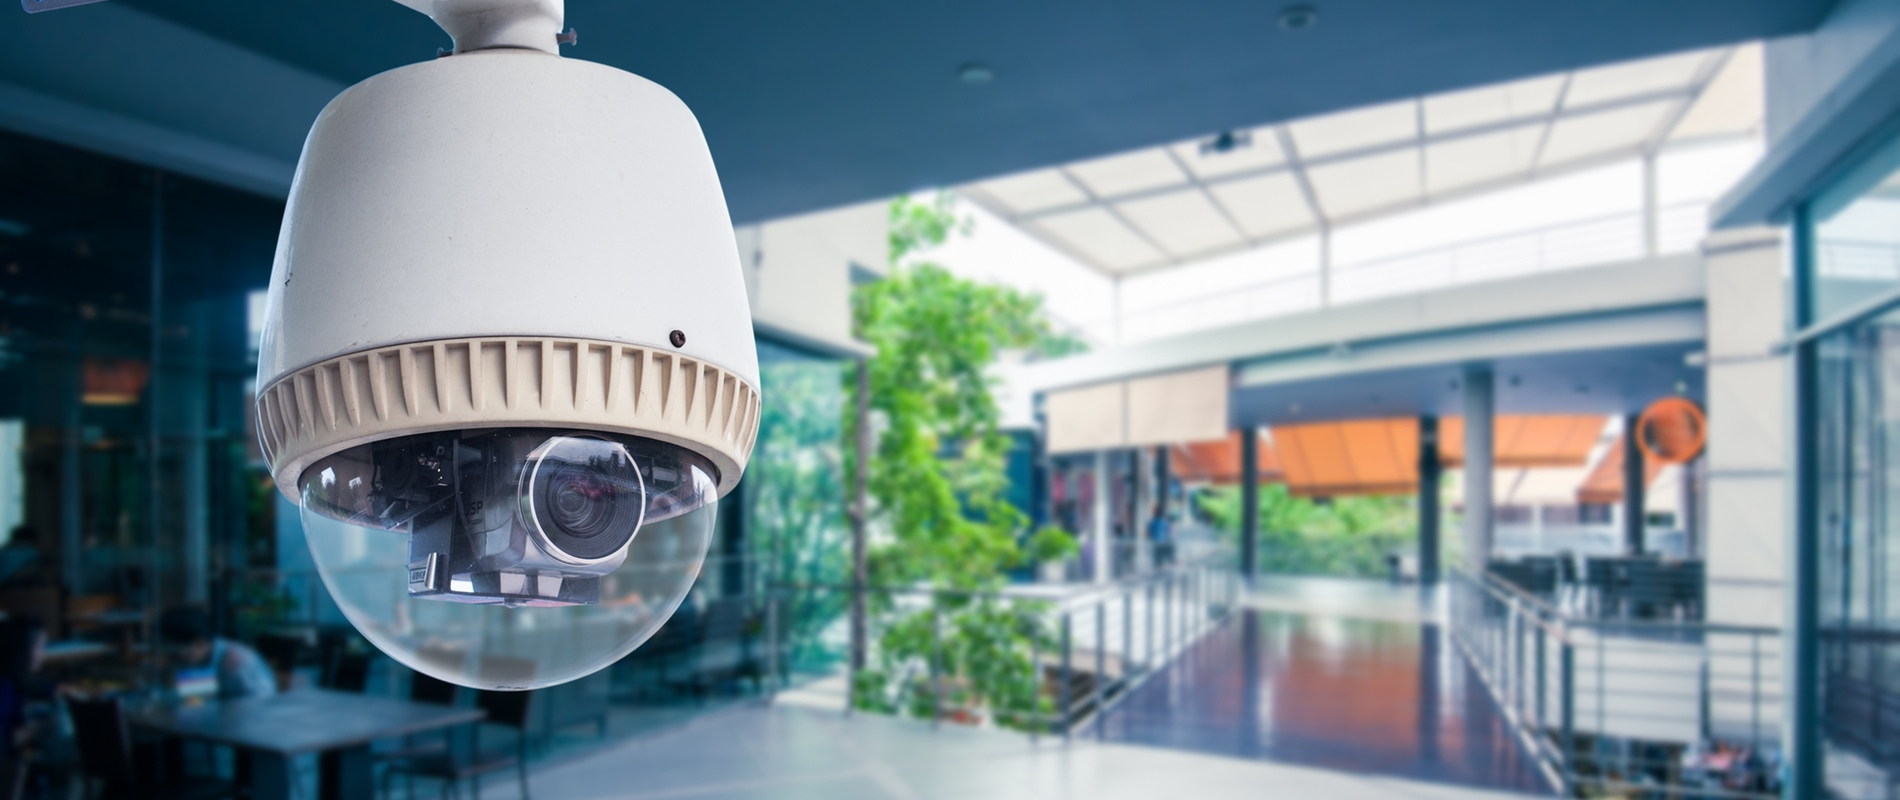 Inexpensive Business Security Systems for Small Enterprises